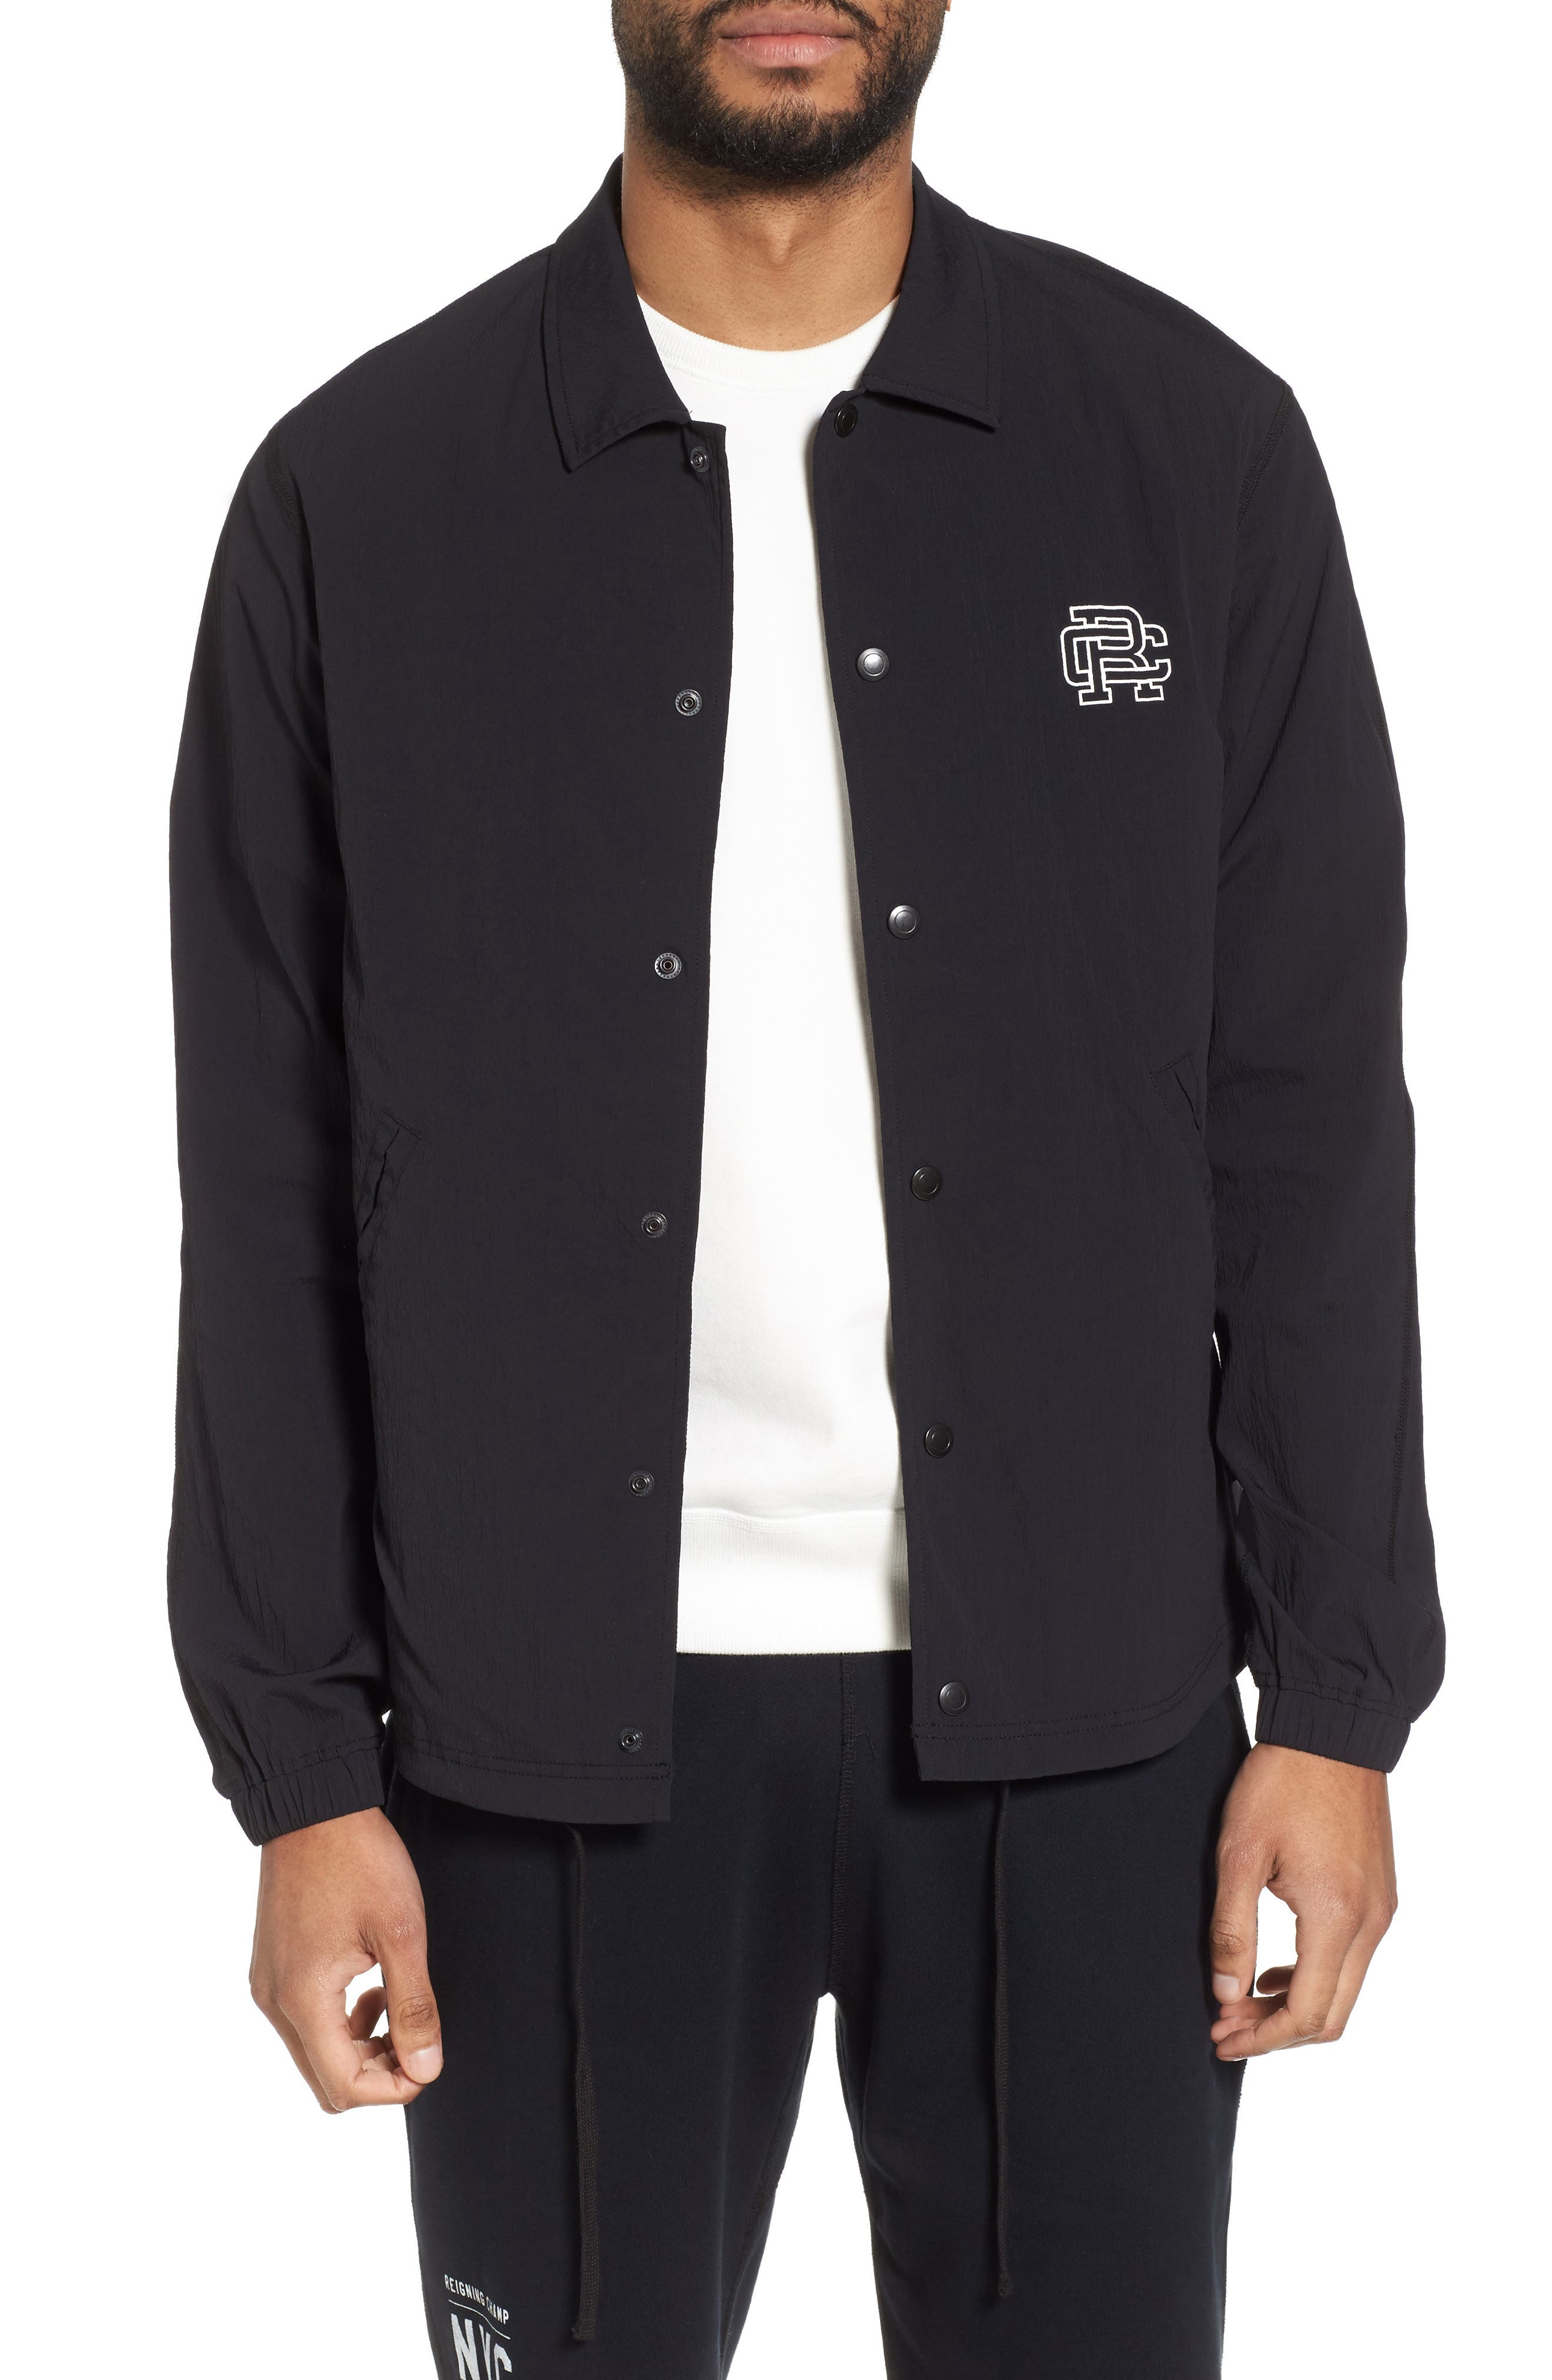 Coach's Jacket,                             Main thumbnail 1, color,                             Black